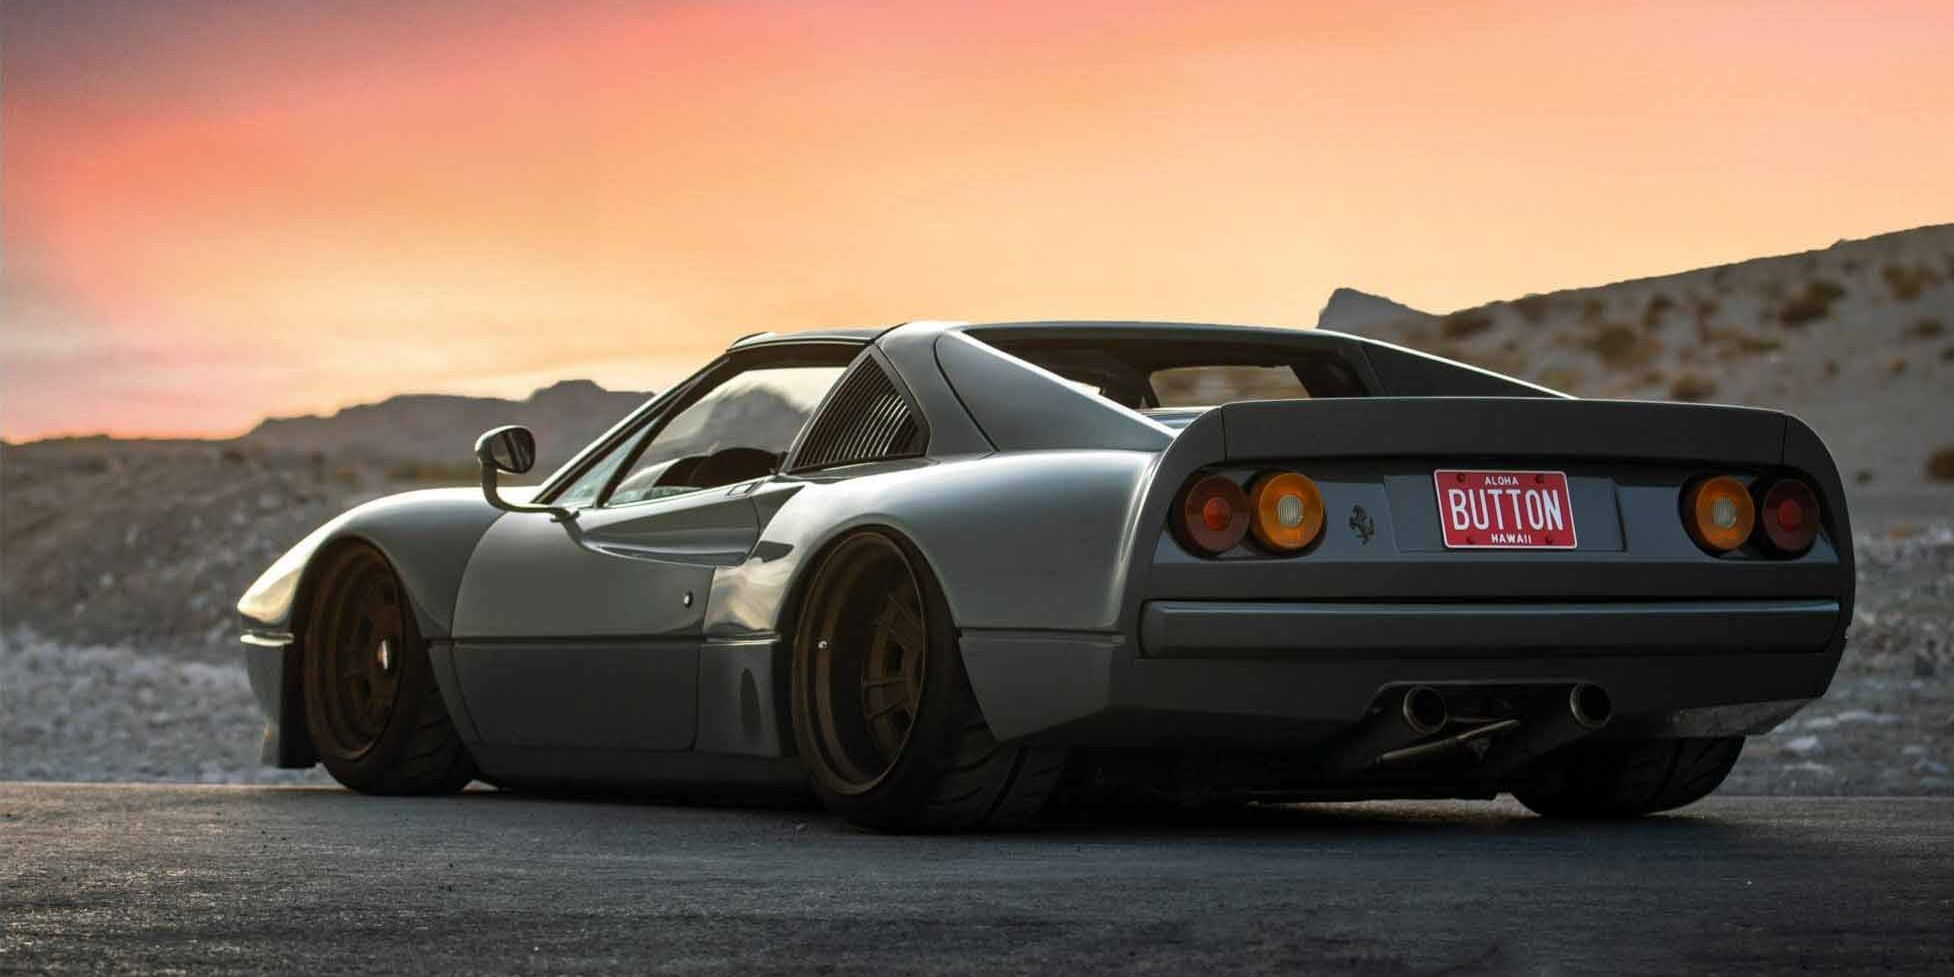 Owners Dared To Modify These Classic Ferraris...And They Look Amazing